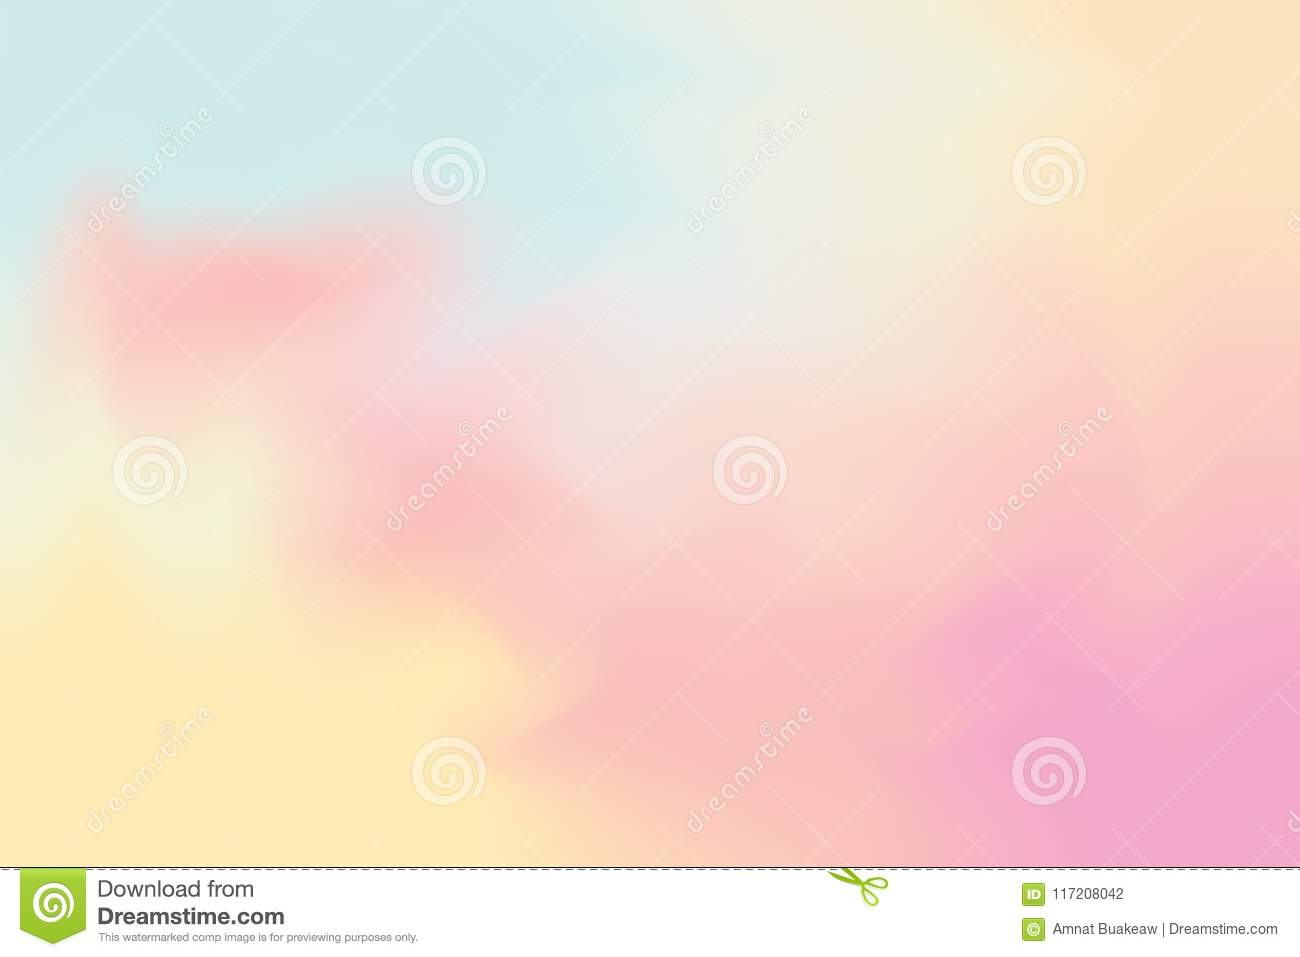 Pink Blue Soft Color Mixed Background Painting Art Pastel Abstract Colorful Wallpaper